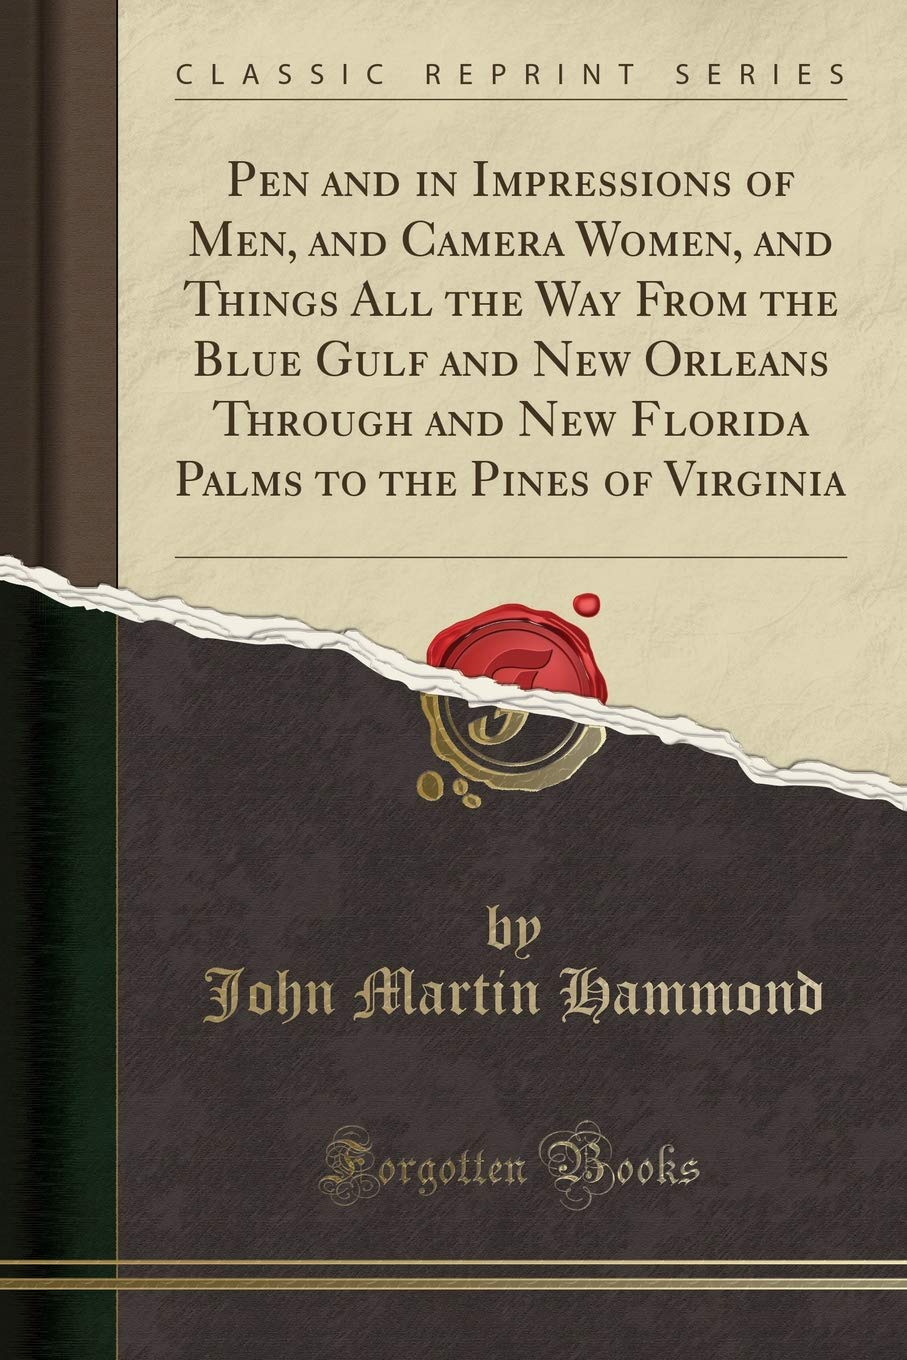 Pen and in Impressions of Men, and Camera Women, and Things All the Way From the Blue Gulf and New Orleans Through and New Florida Palms to the Pines of Virginia (Classic Reprint) pdf